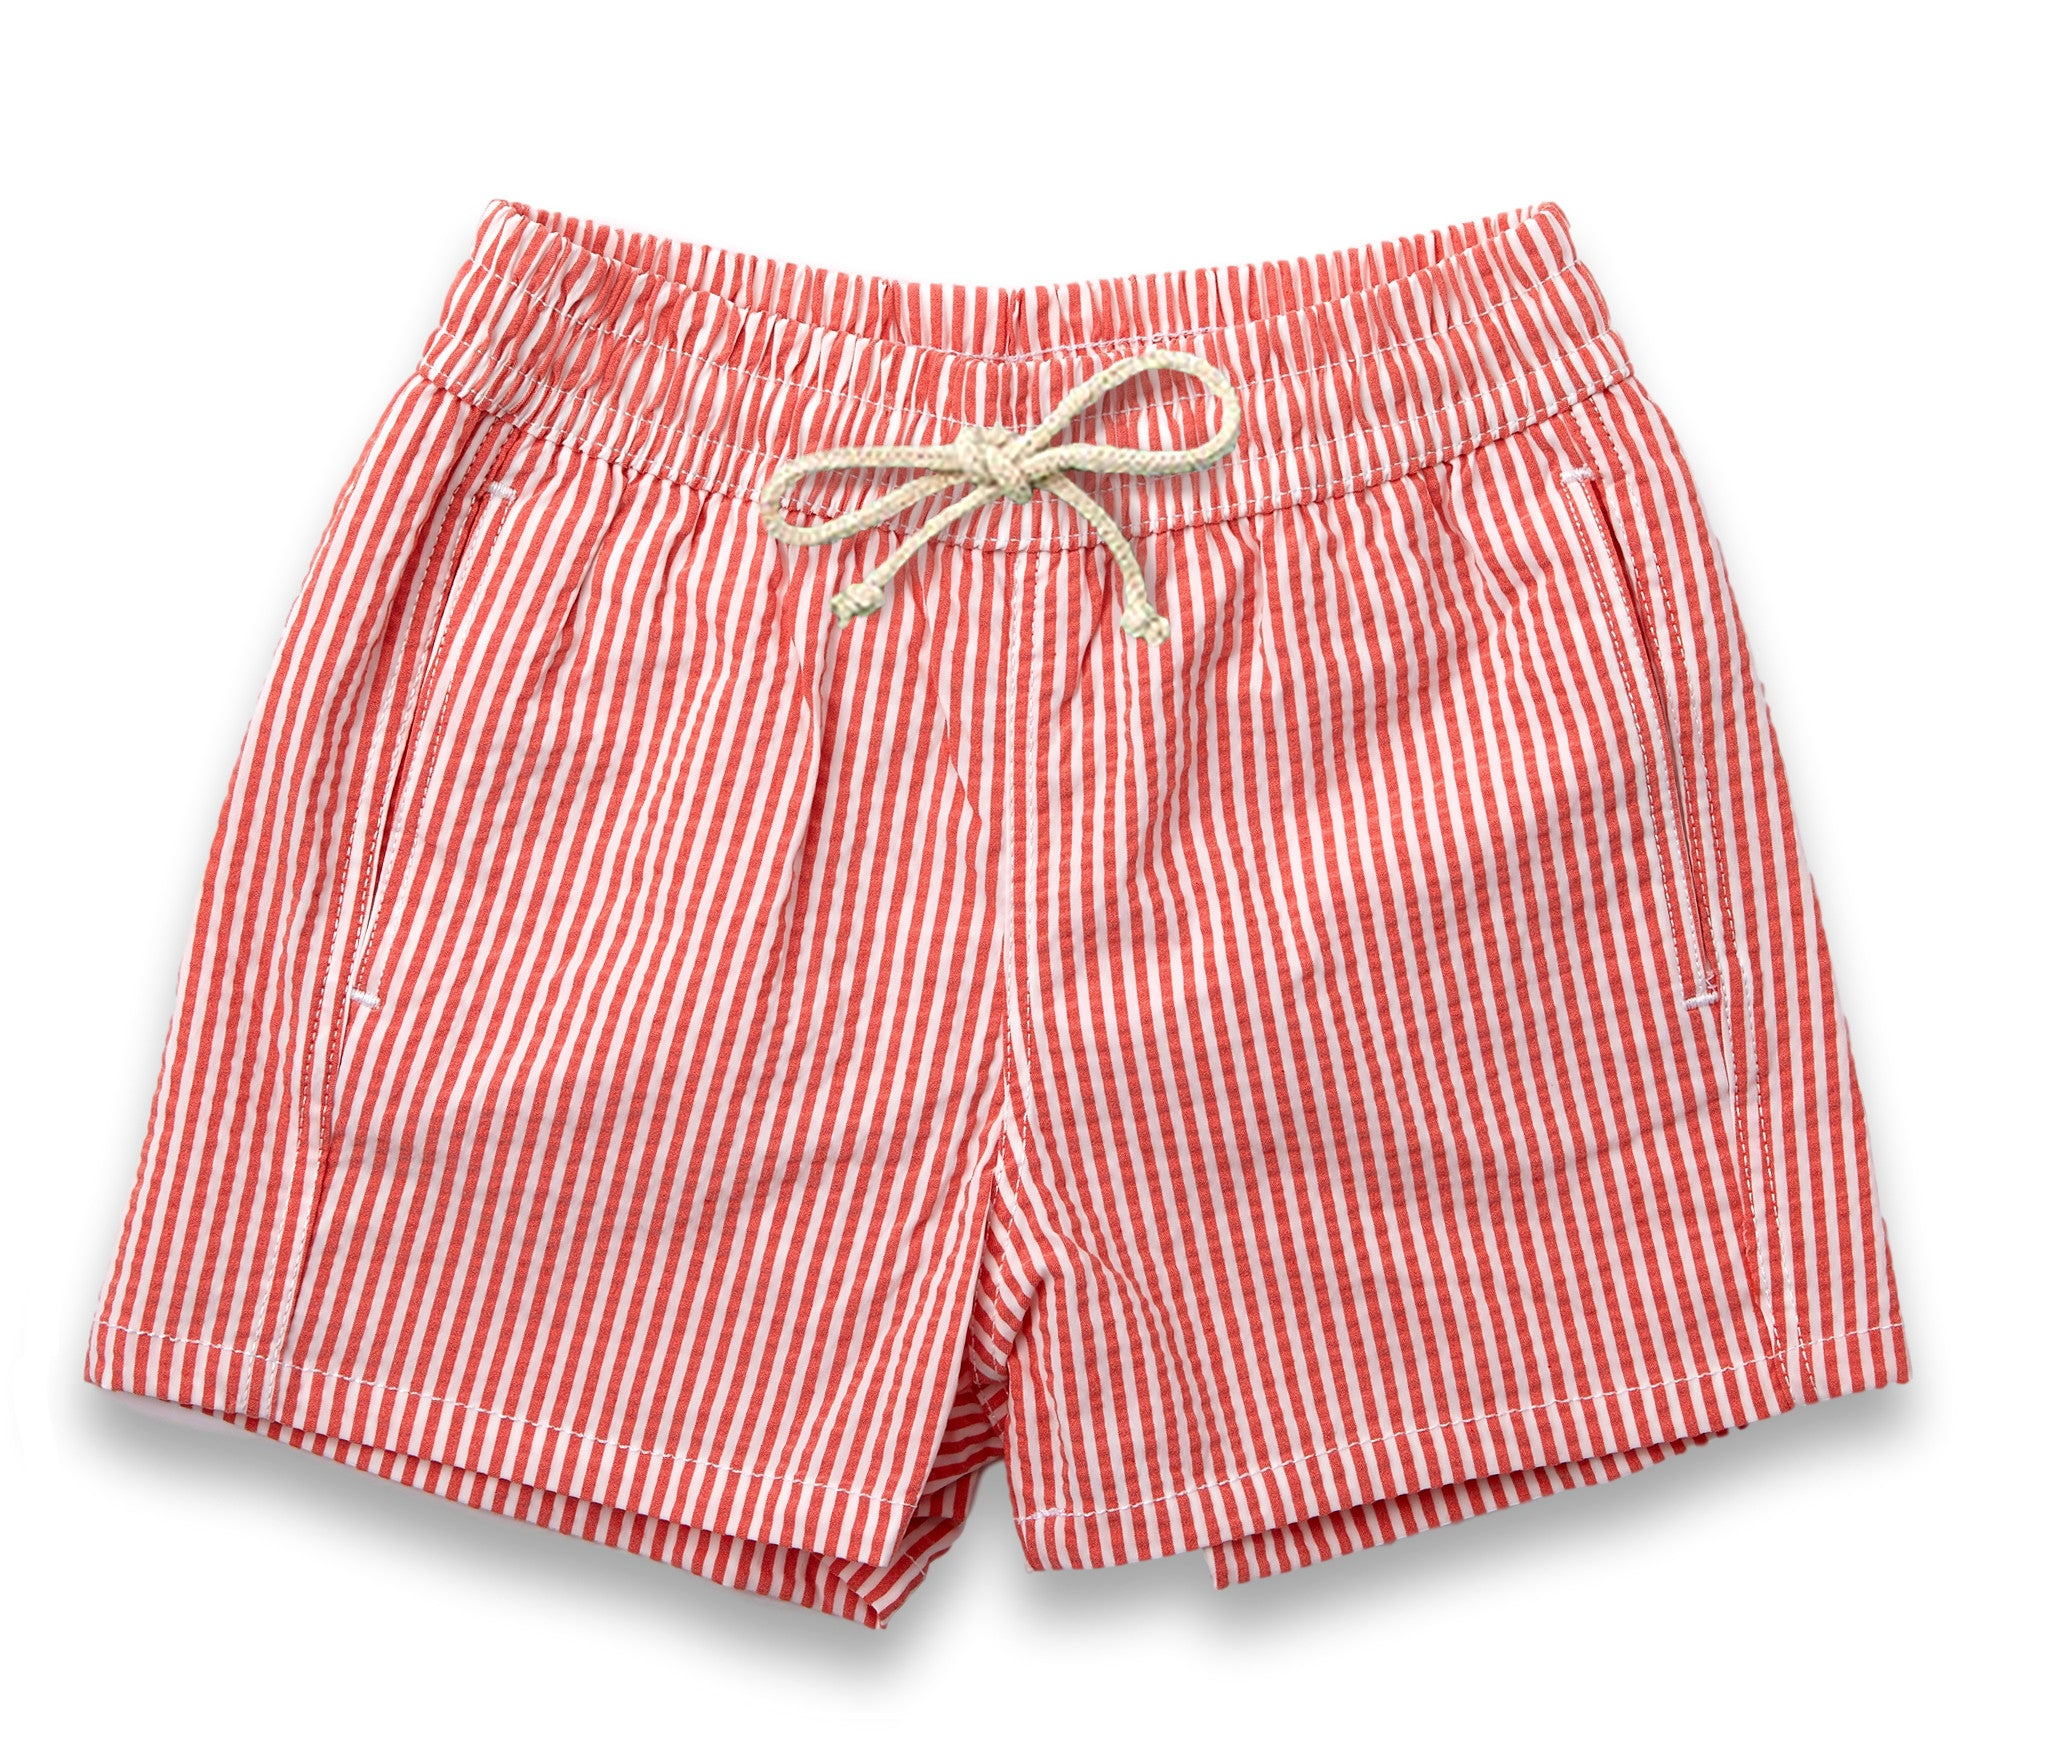 Mens Swim Trunks // Hamptons Red Stripe